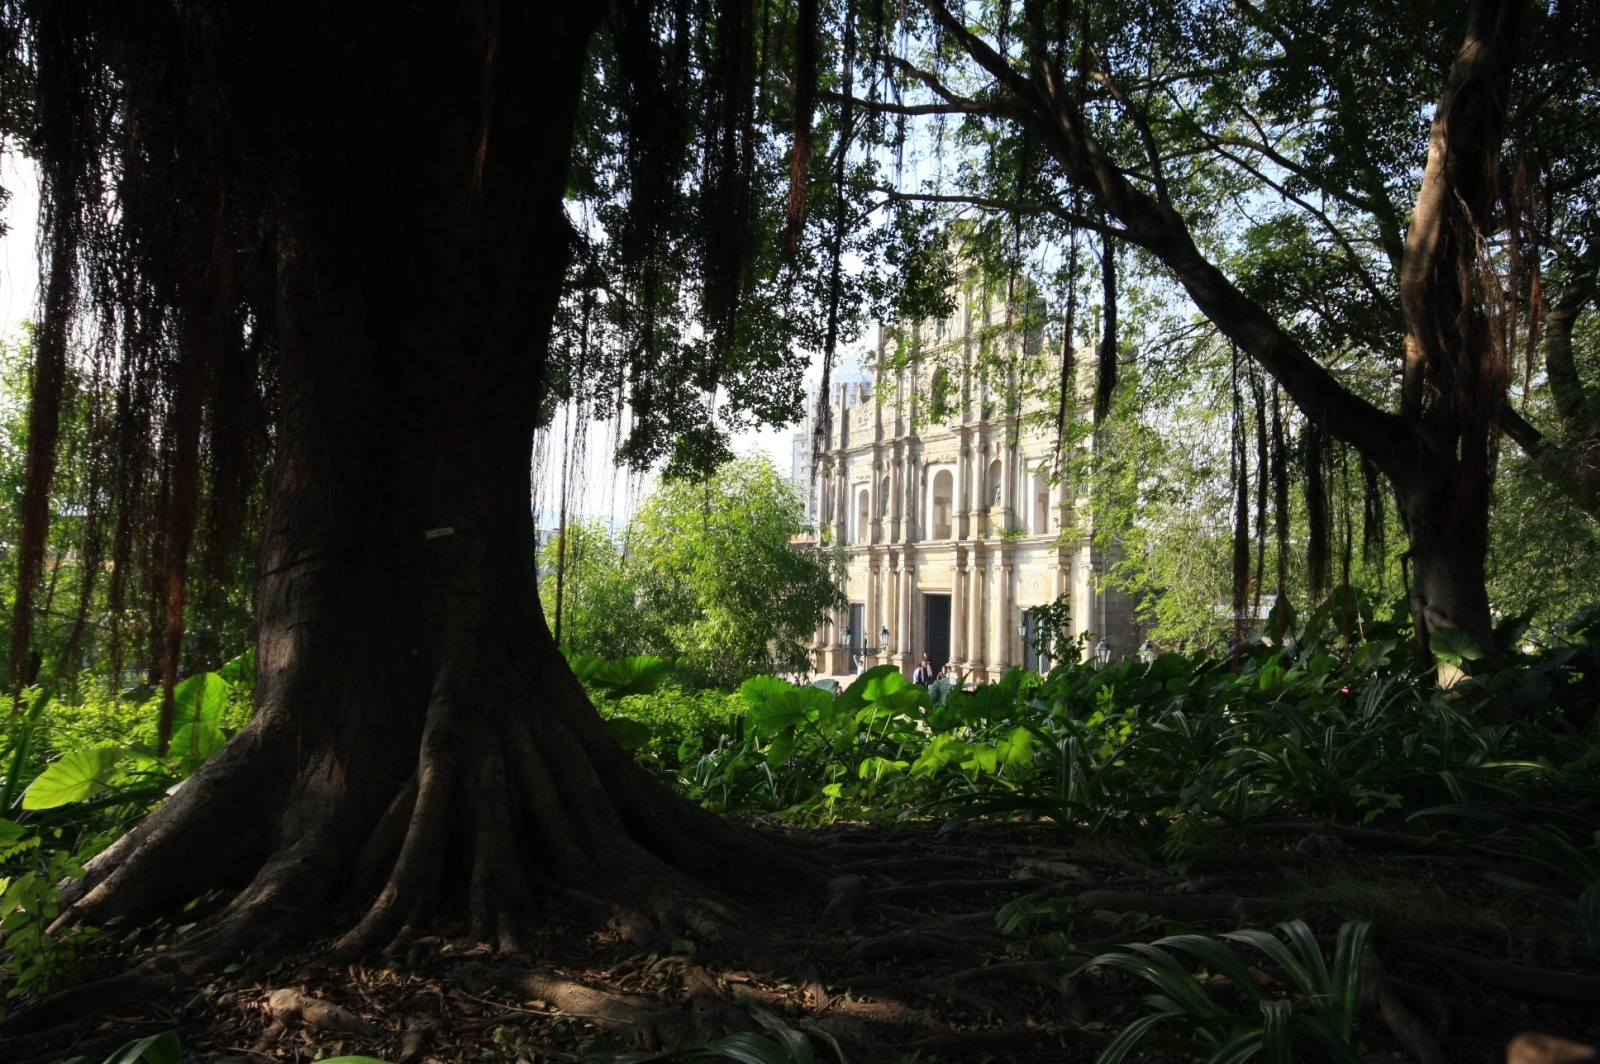 Feels like a lost city in jungle? Not quite - you're in the center of Macau!